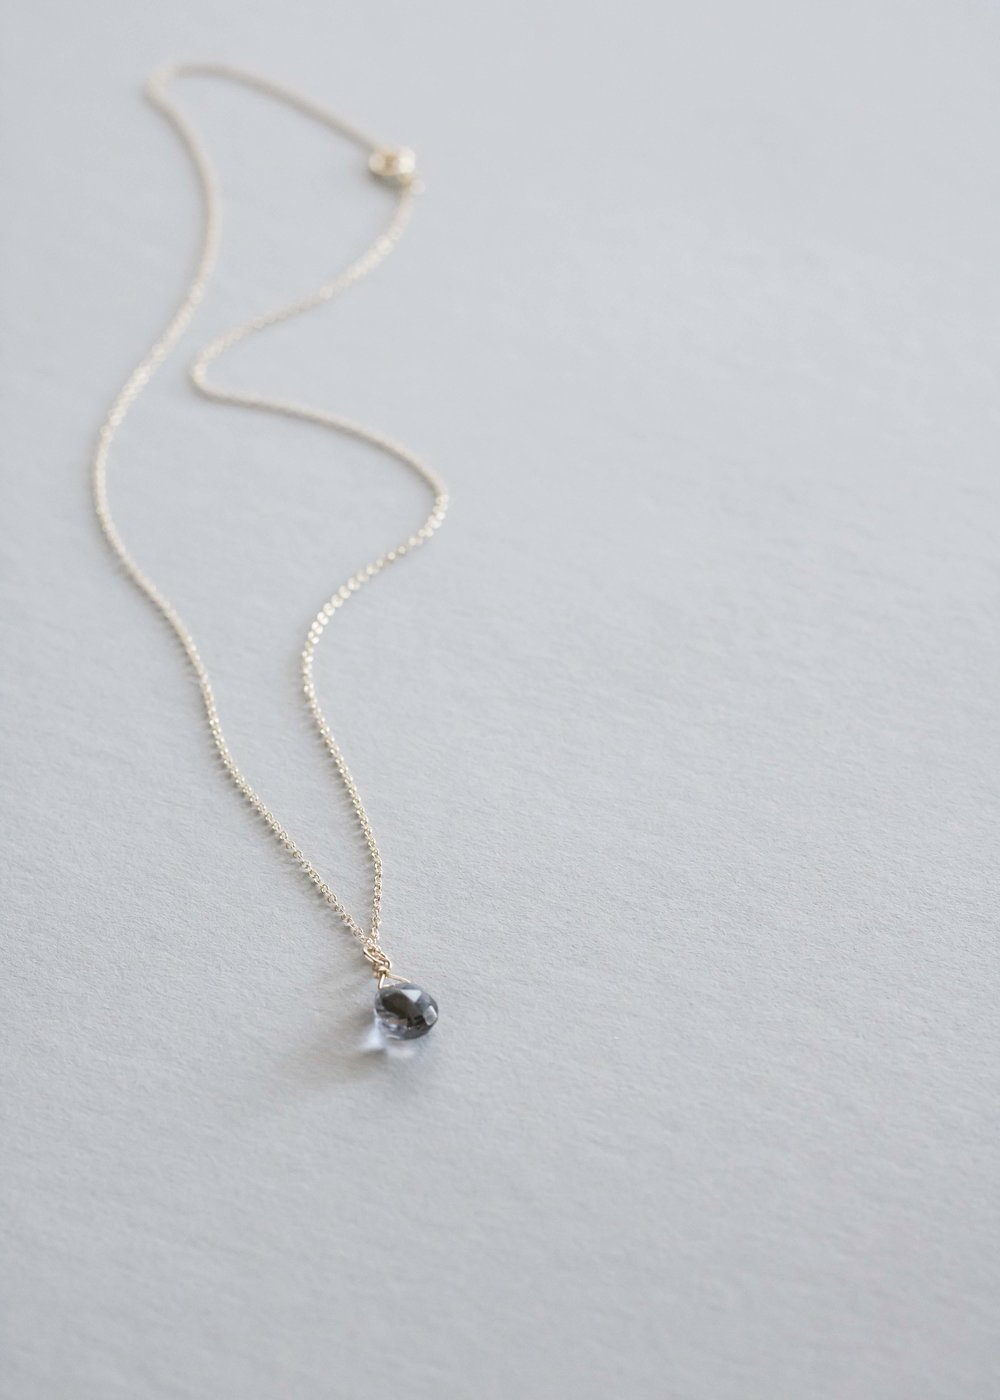 the simplicity necklace by emma jane designs coordinates into any style with ease. grab one for yourself, too, so you and your mom can think of each other with each wear. available in our  sweet sentiments gift capsule .